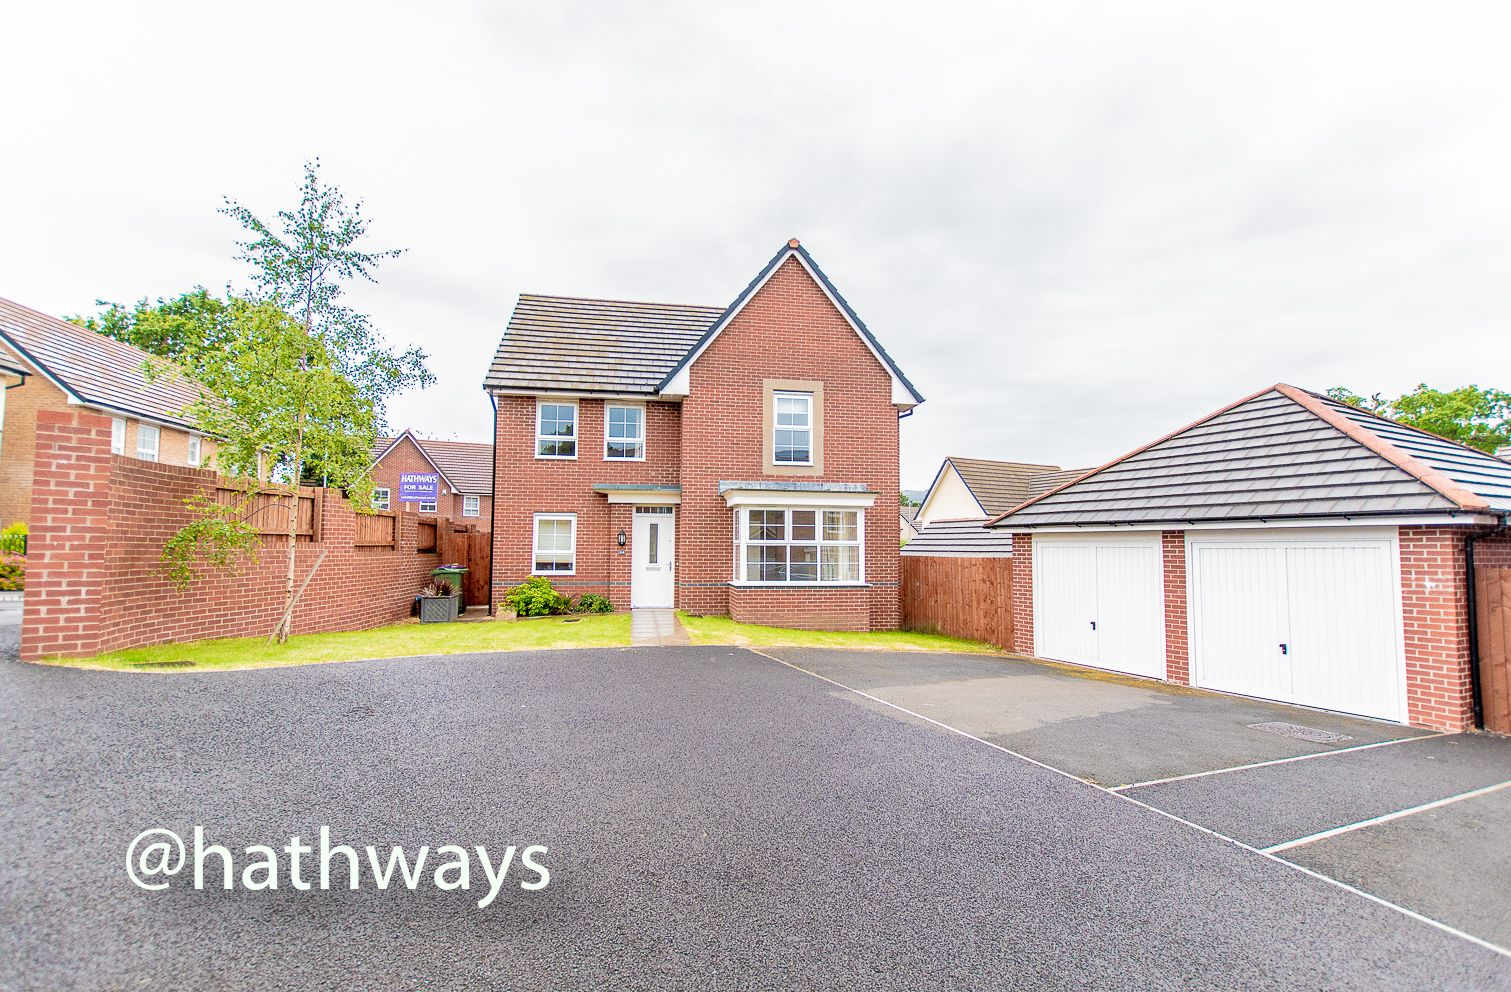 4 bed house for sale in Chapel Walk, NP4